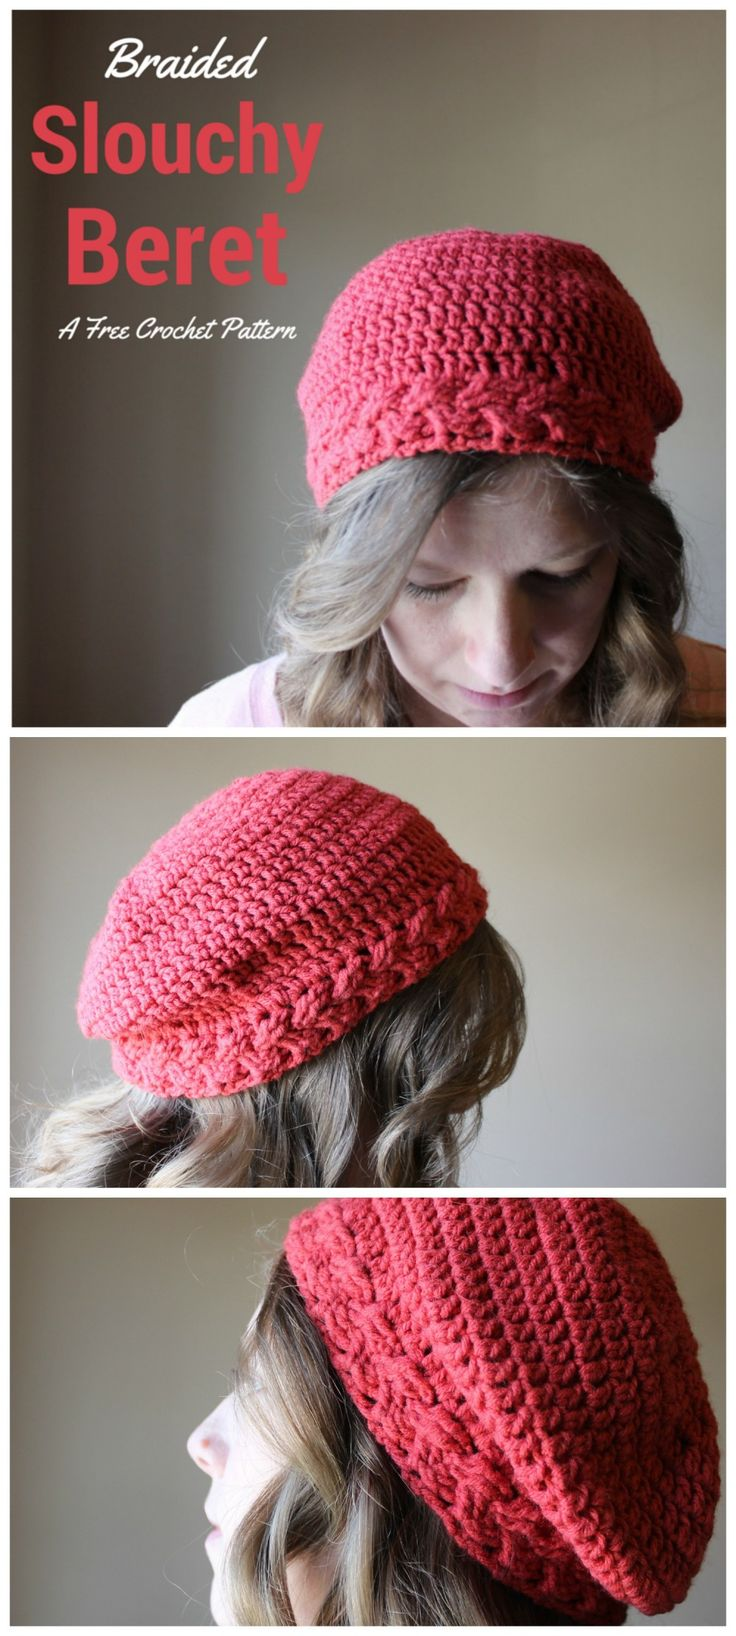 Braided Slouchy Hat - Free crochet pattern.